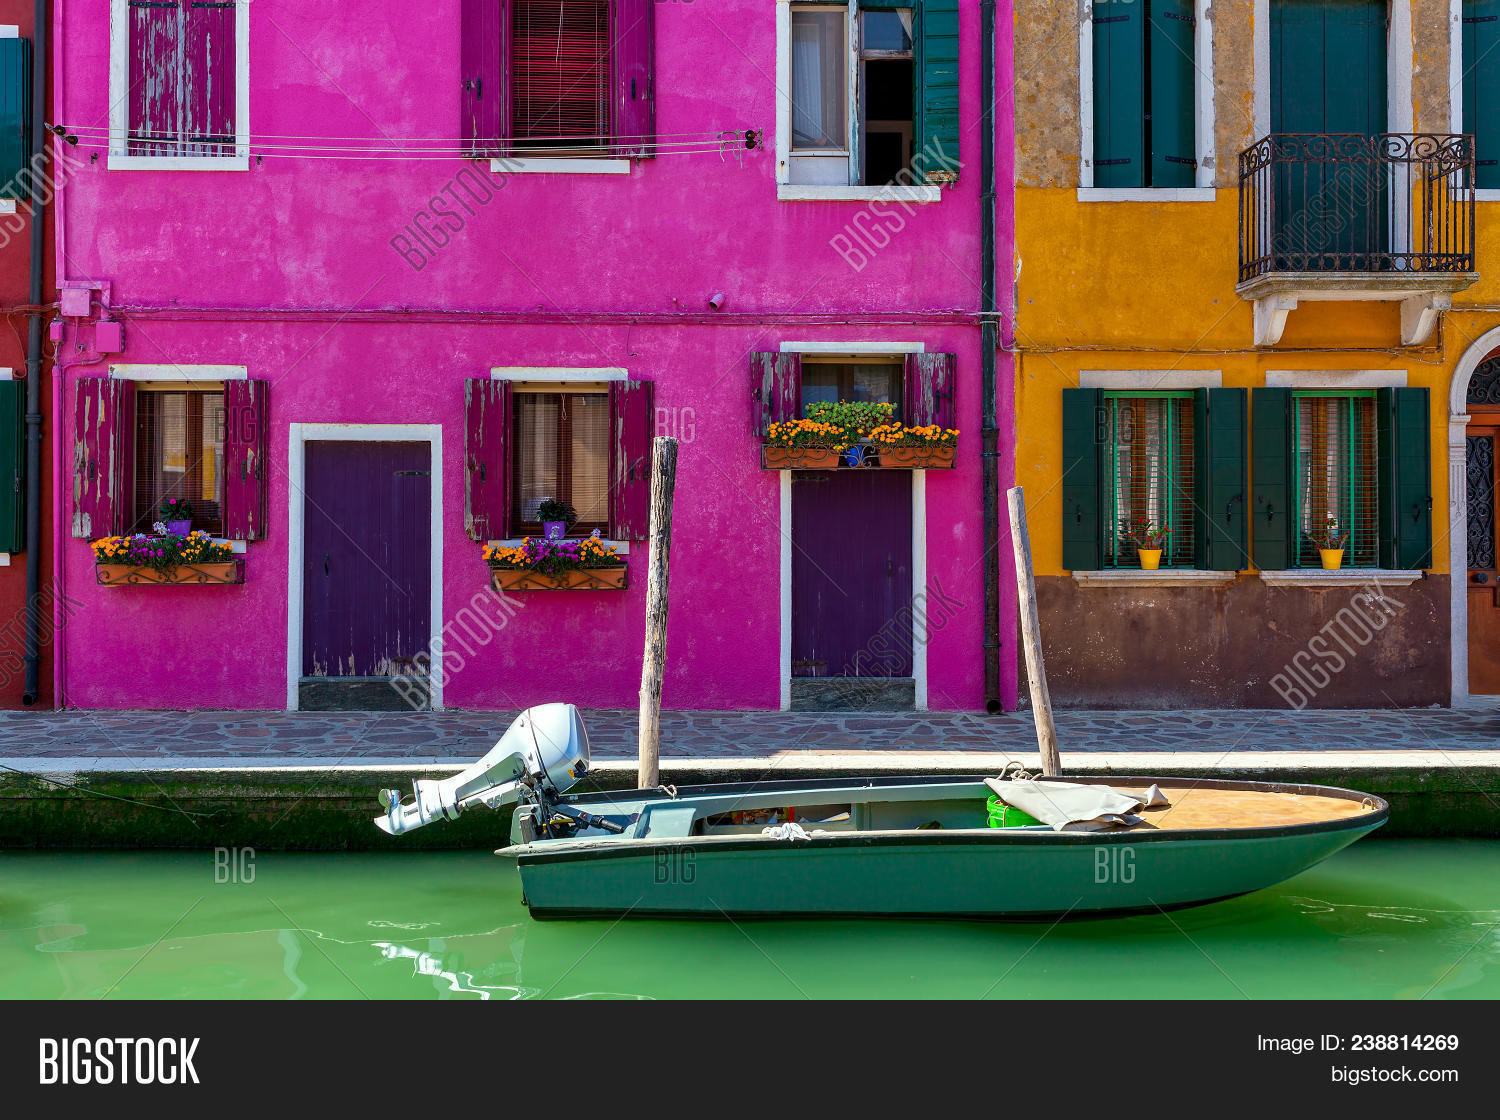 Boat On Narrow Canal Front Colorful Image & Photo | Bigstock